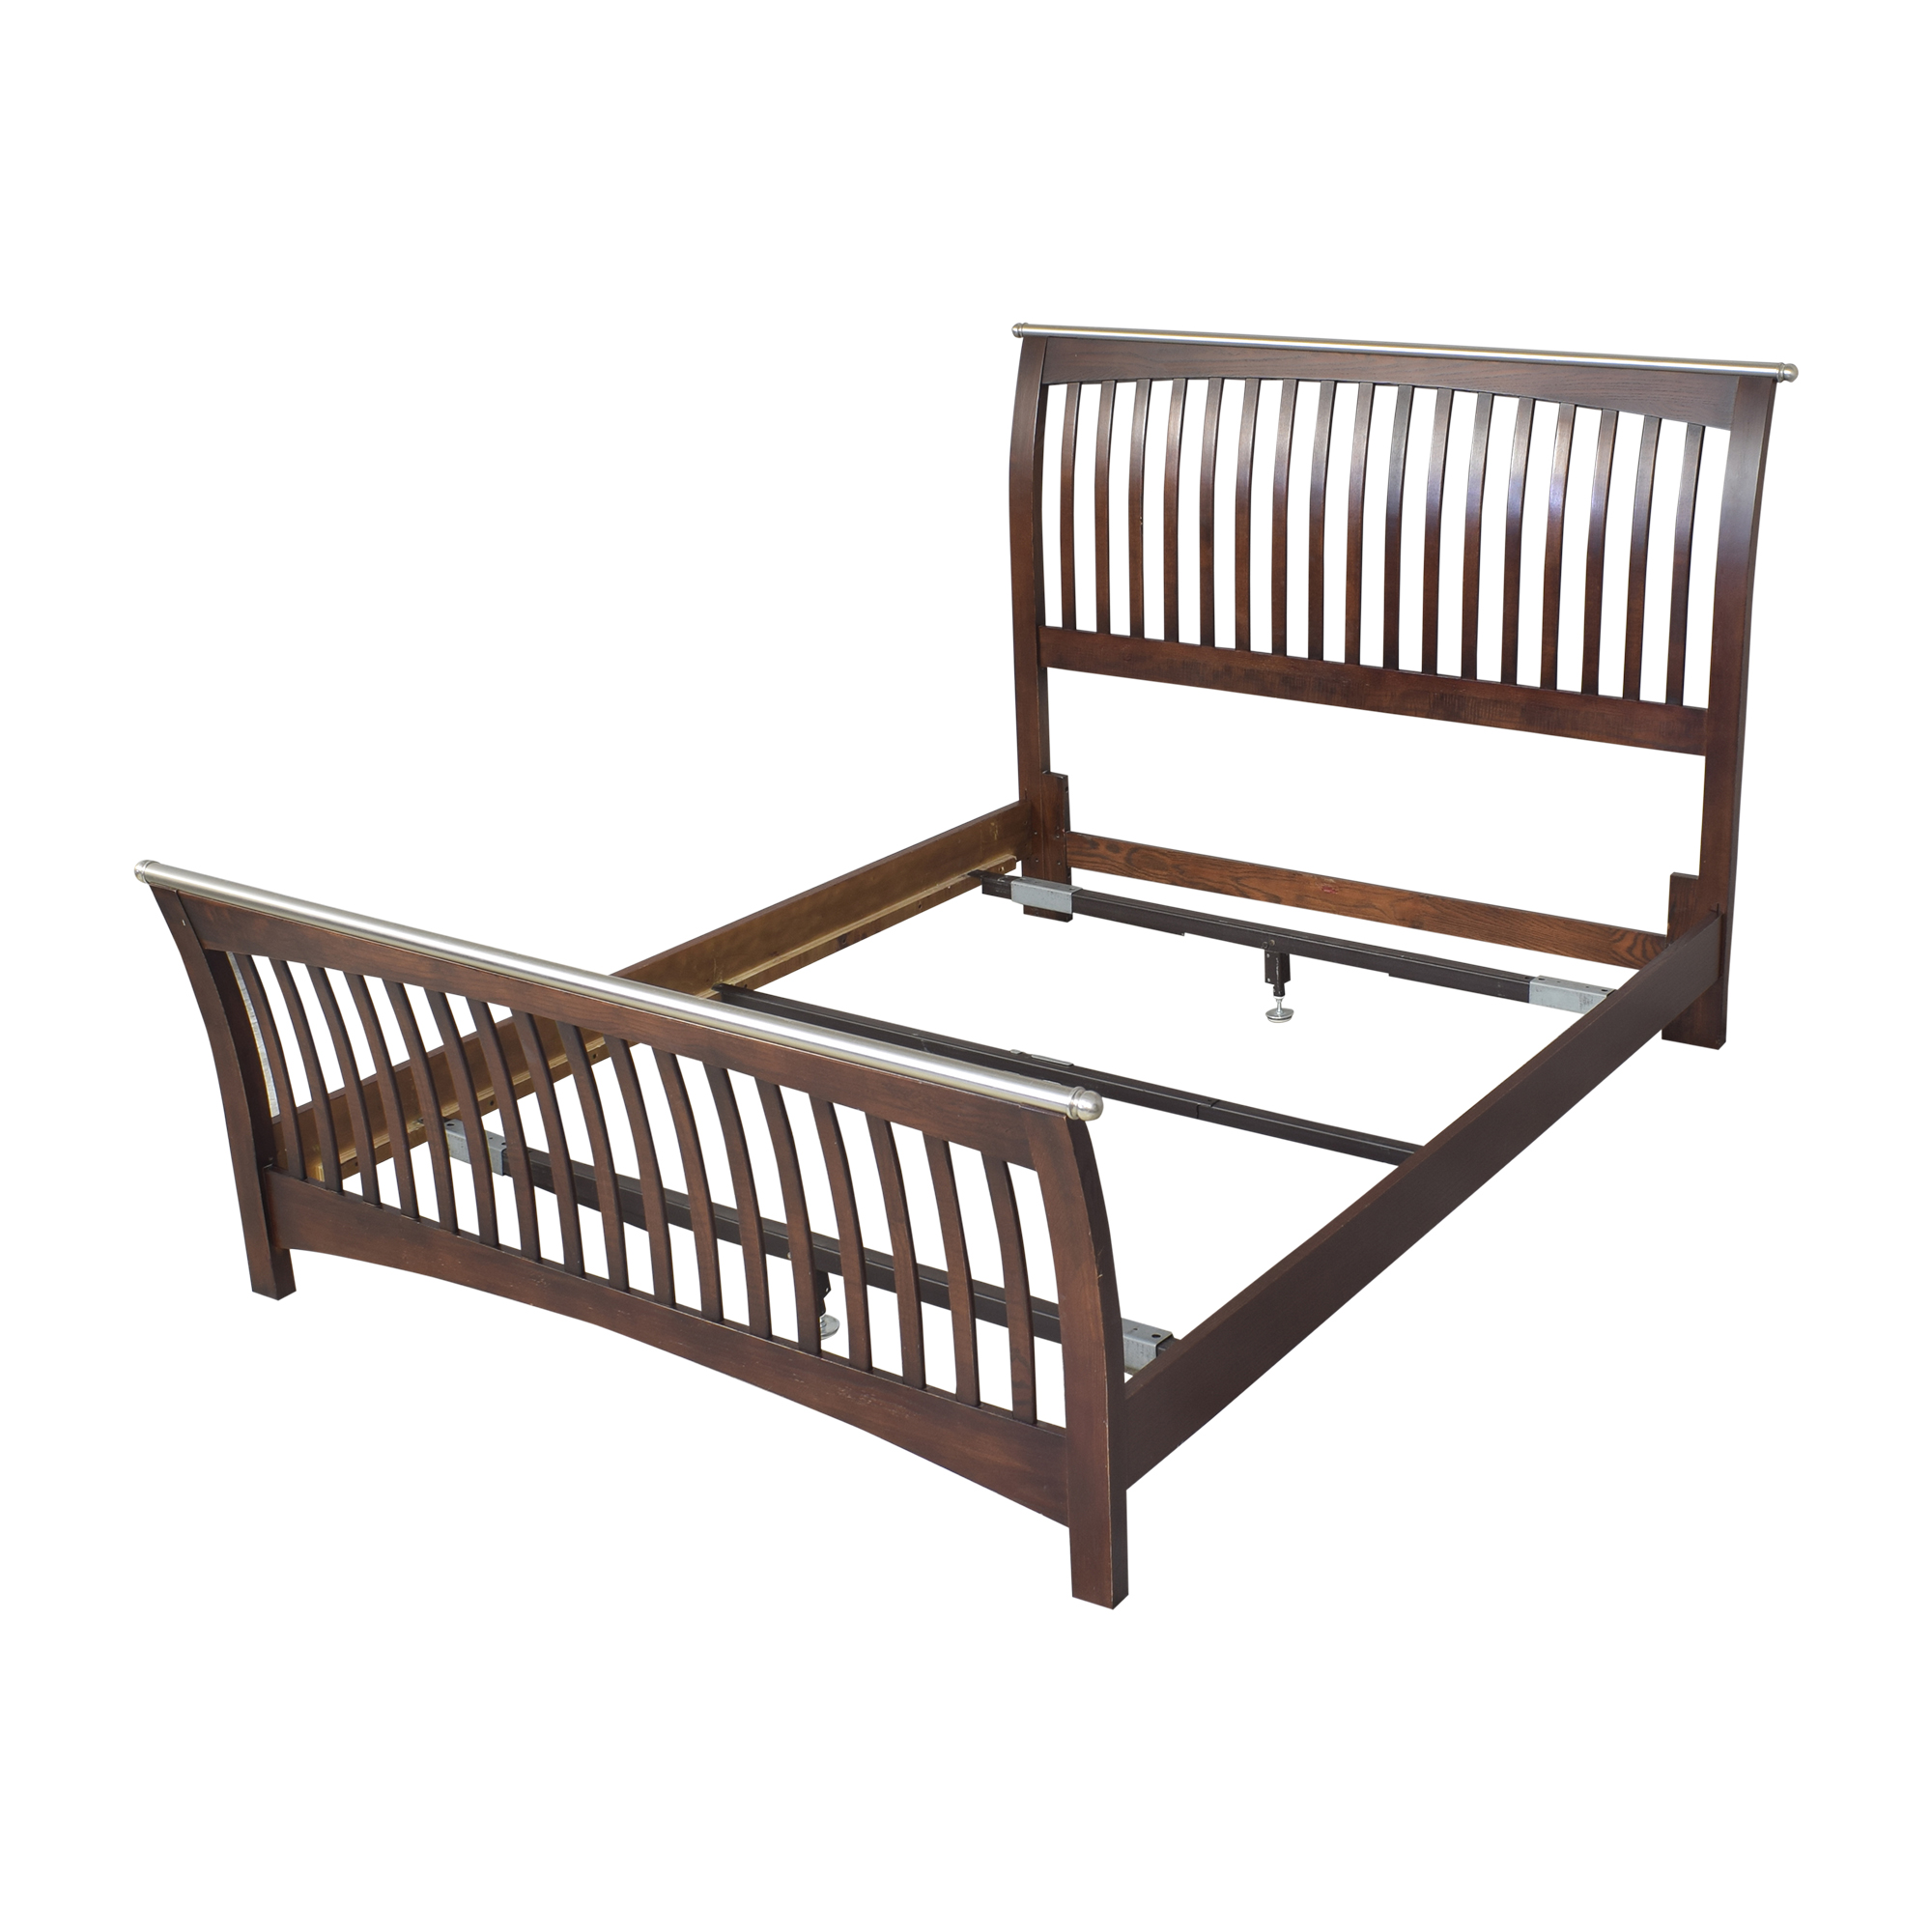 Thomasville Thomasville Mission-Style Queen Bed coupon